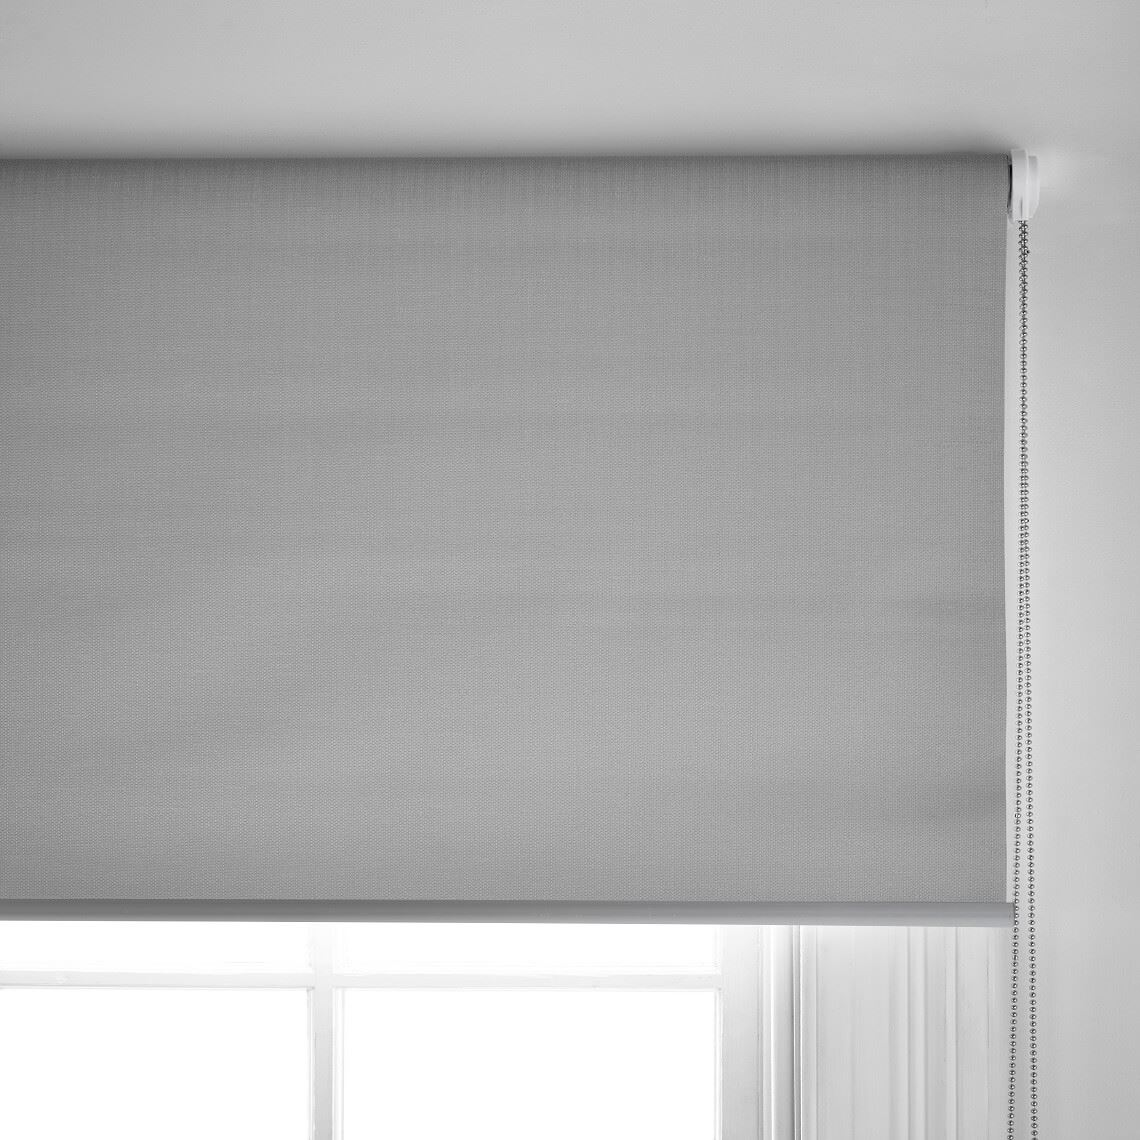 Casa Blockout Roller Blind Size W 150cm x D 0cm x H 210cm in Grey 100% Polyester Freedom by Freedom, a Curtains for sale on Style Sourcebook